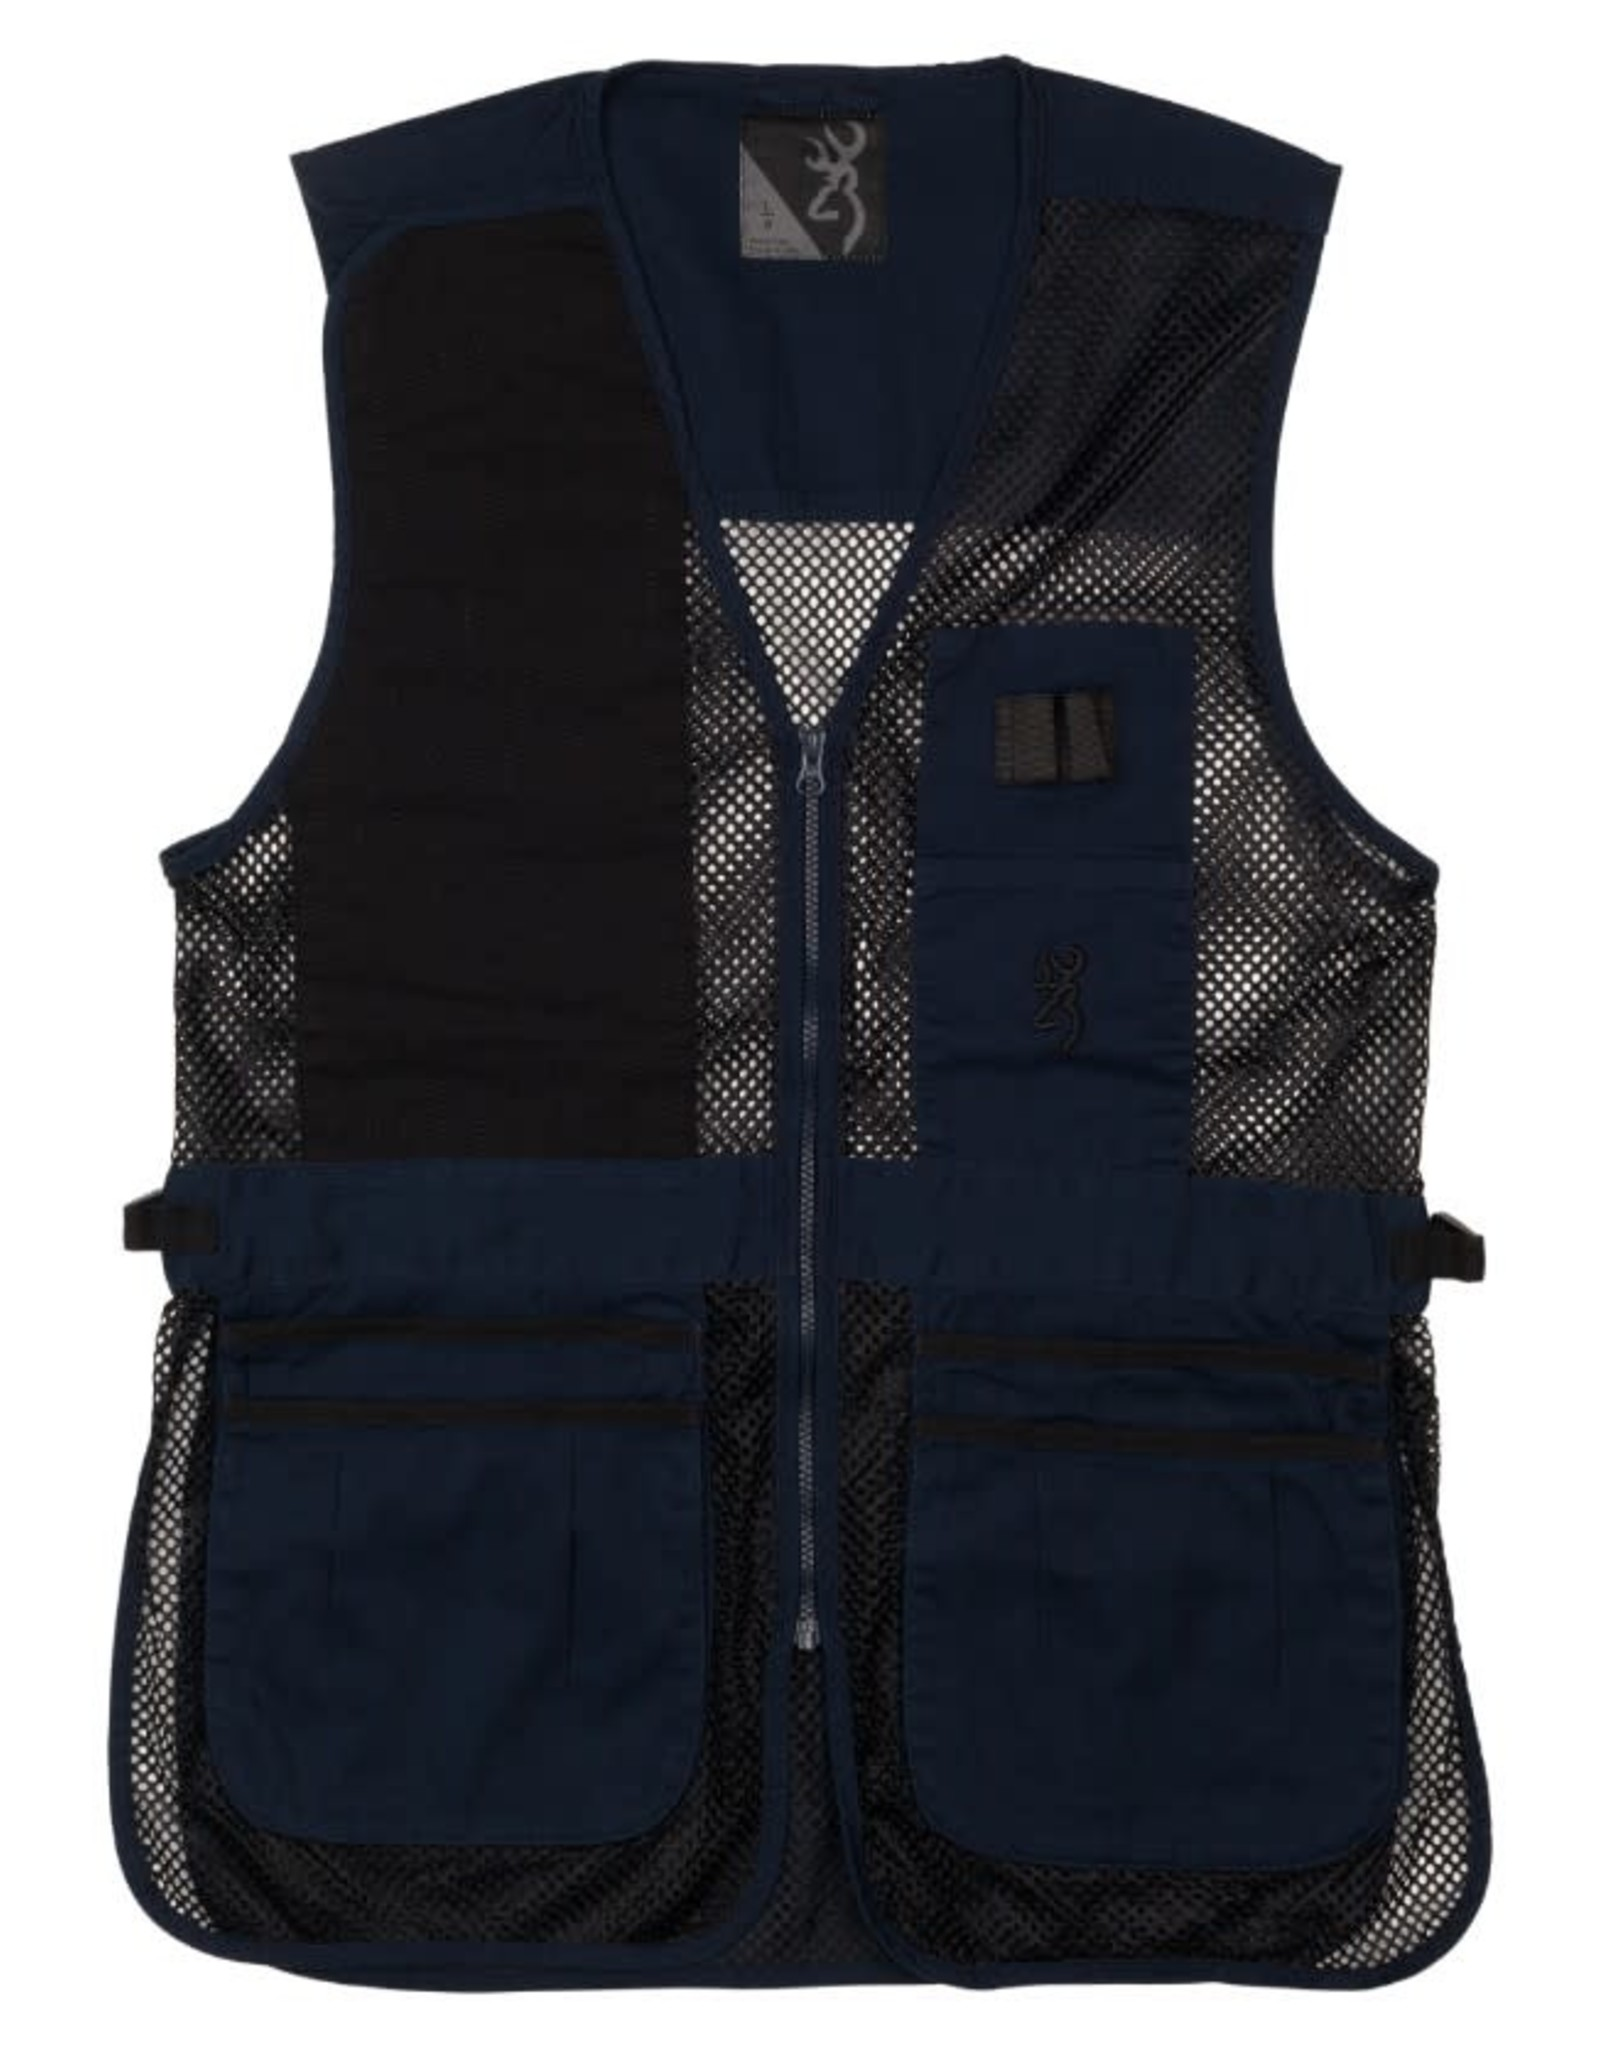 Browning Trapper Creek Vest - Navy/Blk - LG